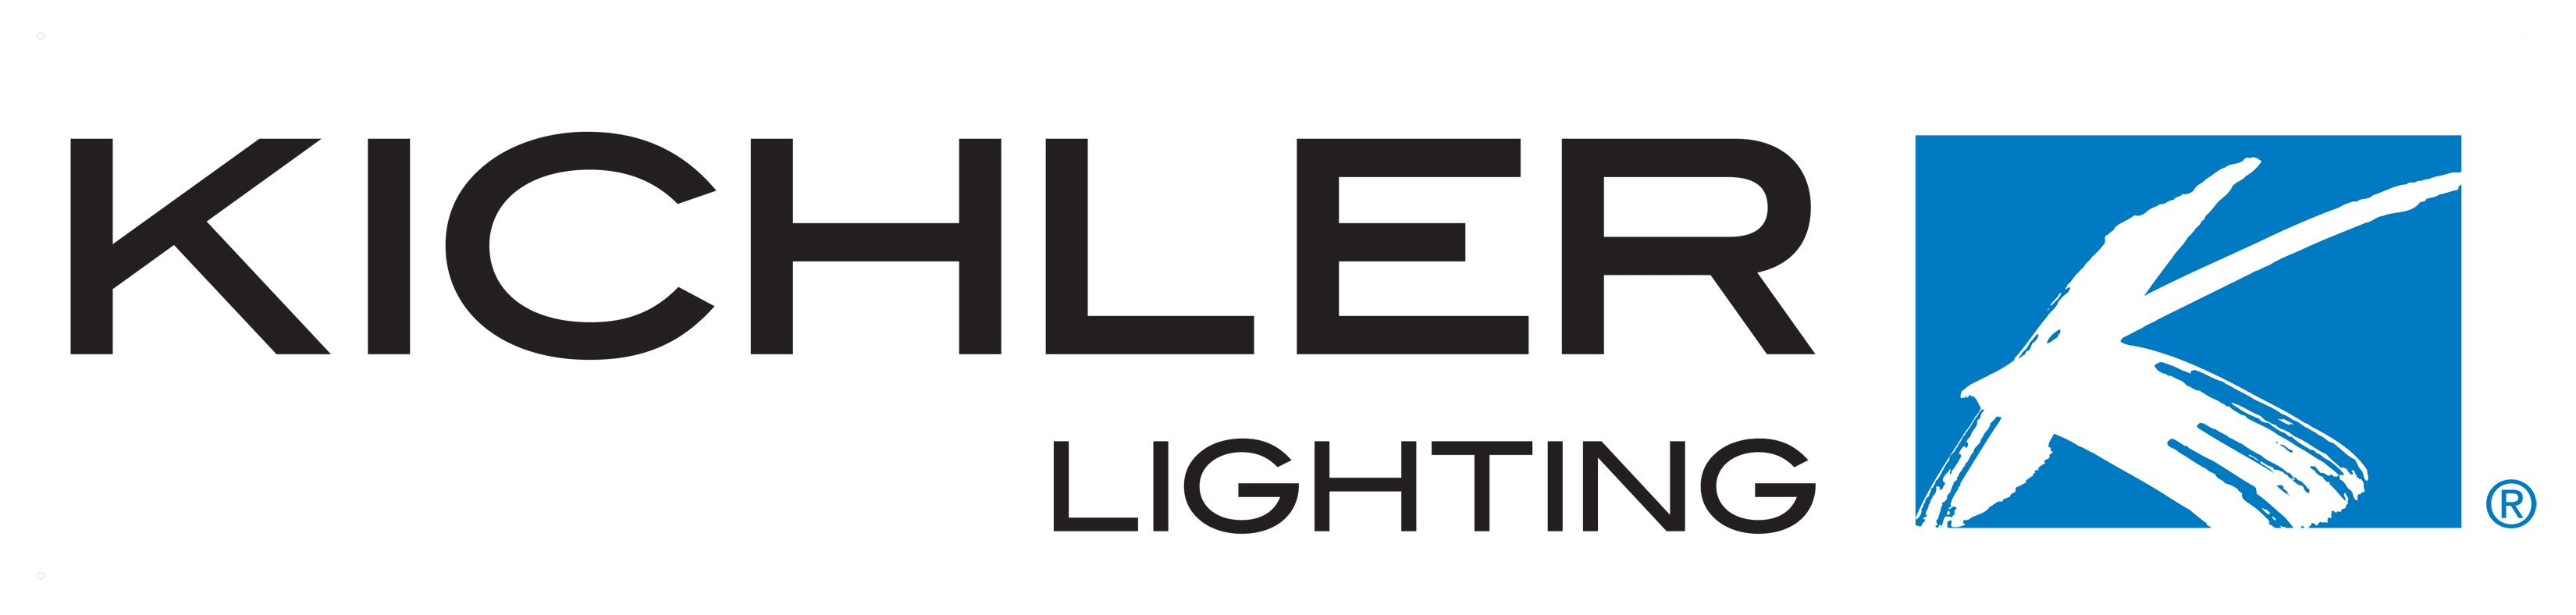 Kichler_Lighting